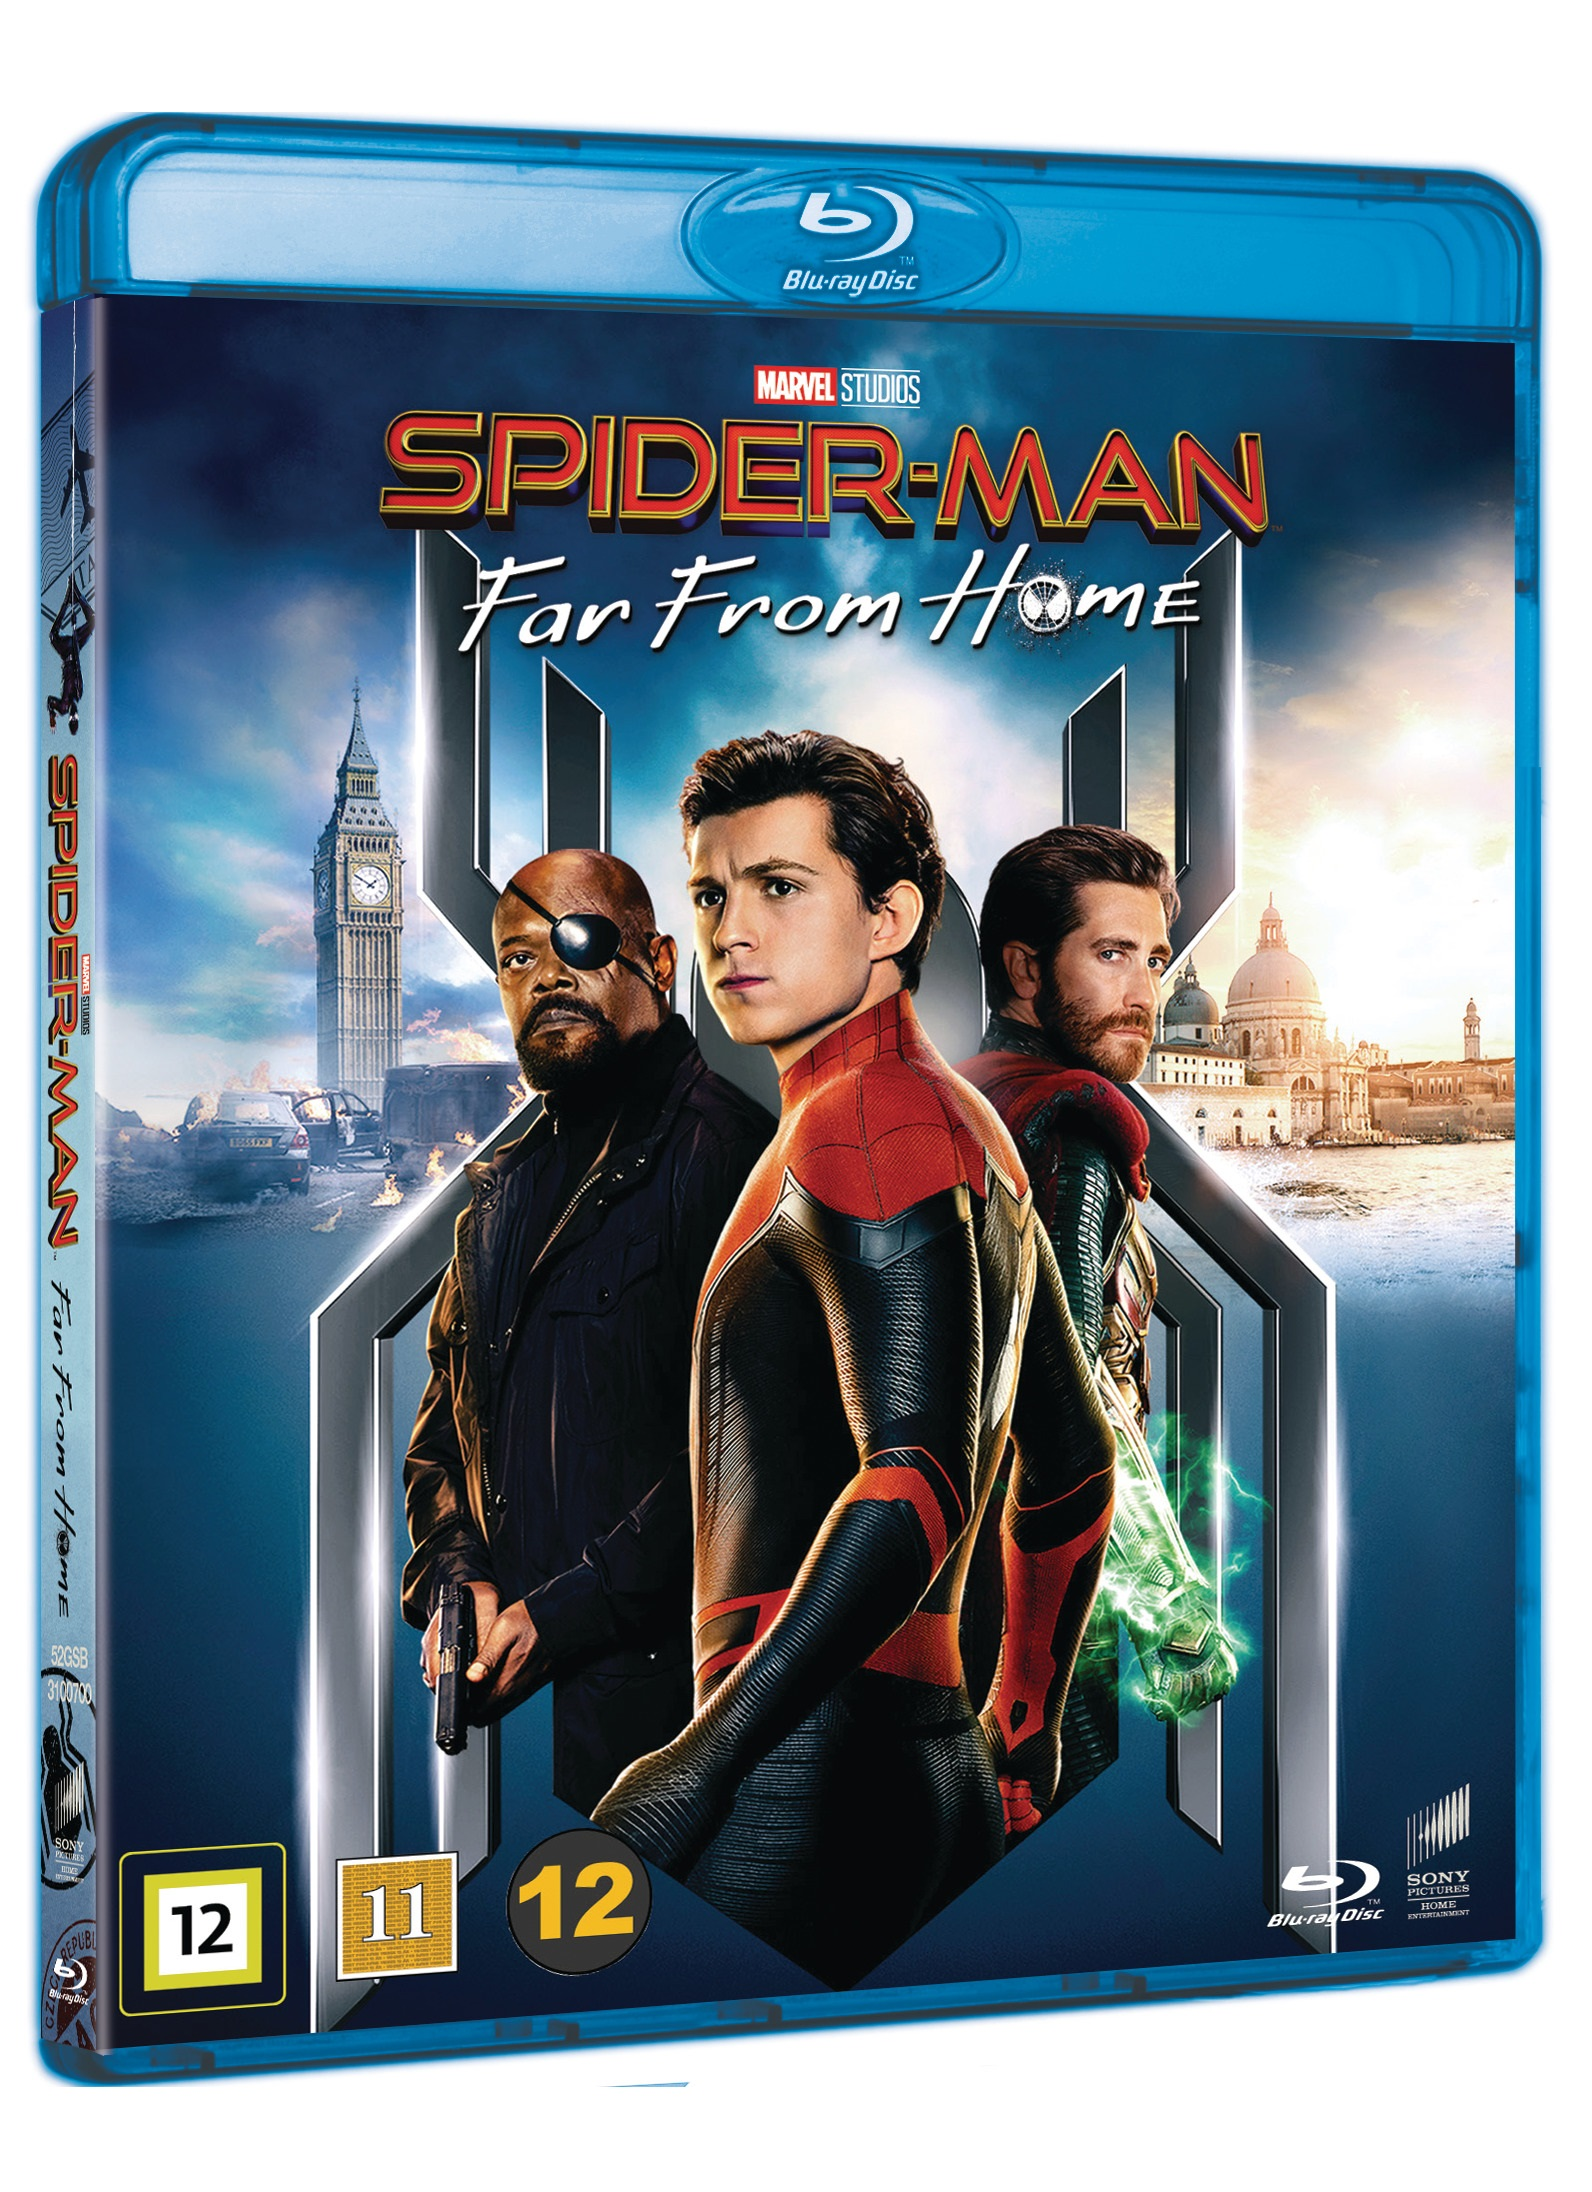 Spider-man: Far from Home -  - Film -  - 7330031007000 - 21/11-2019